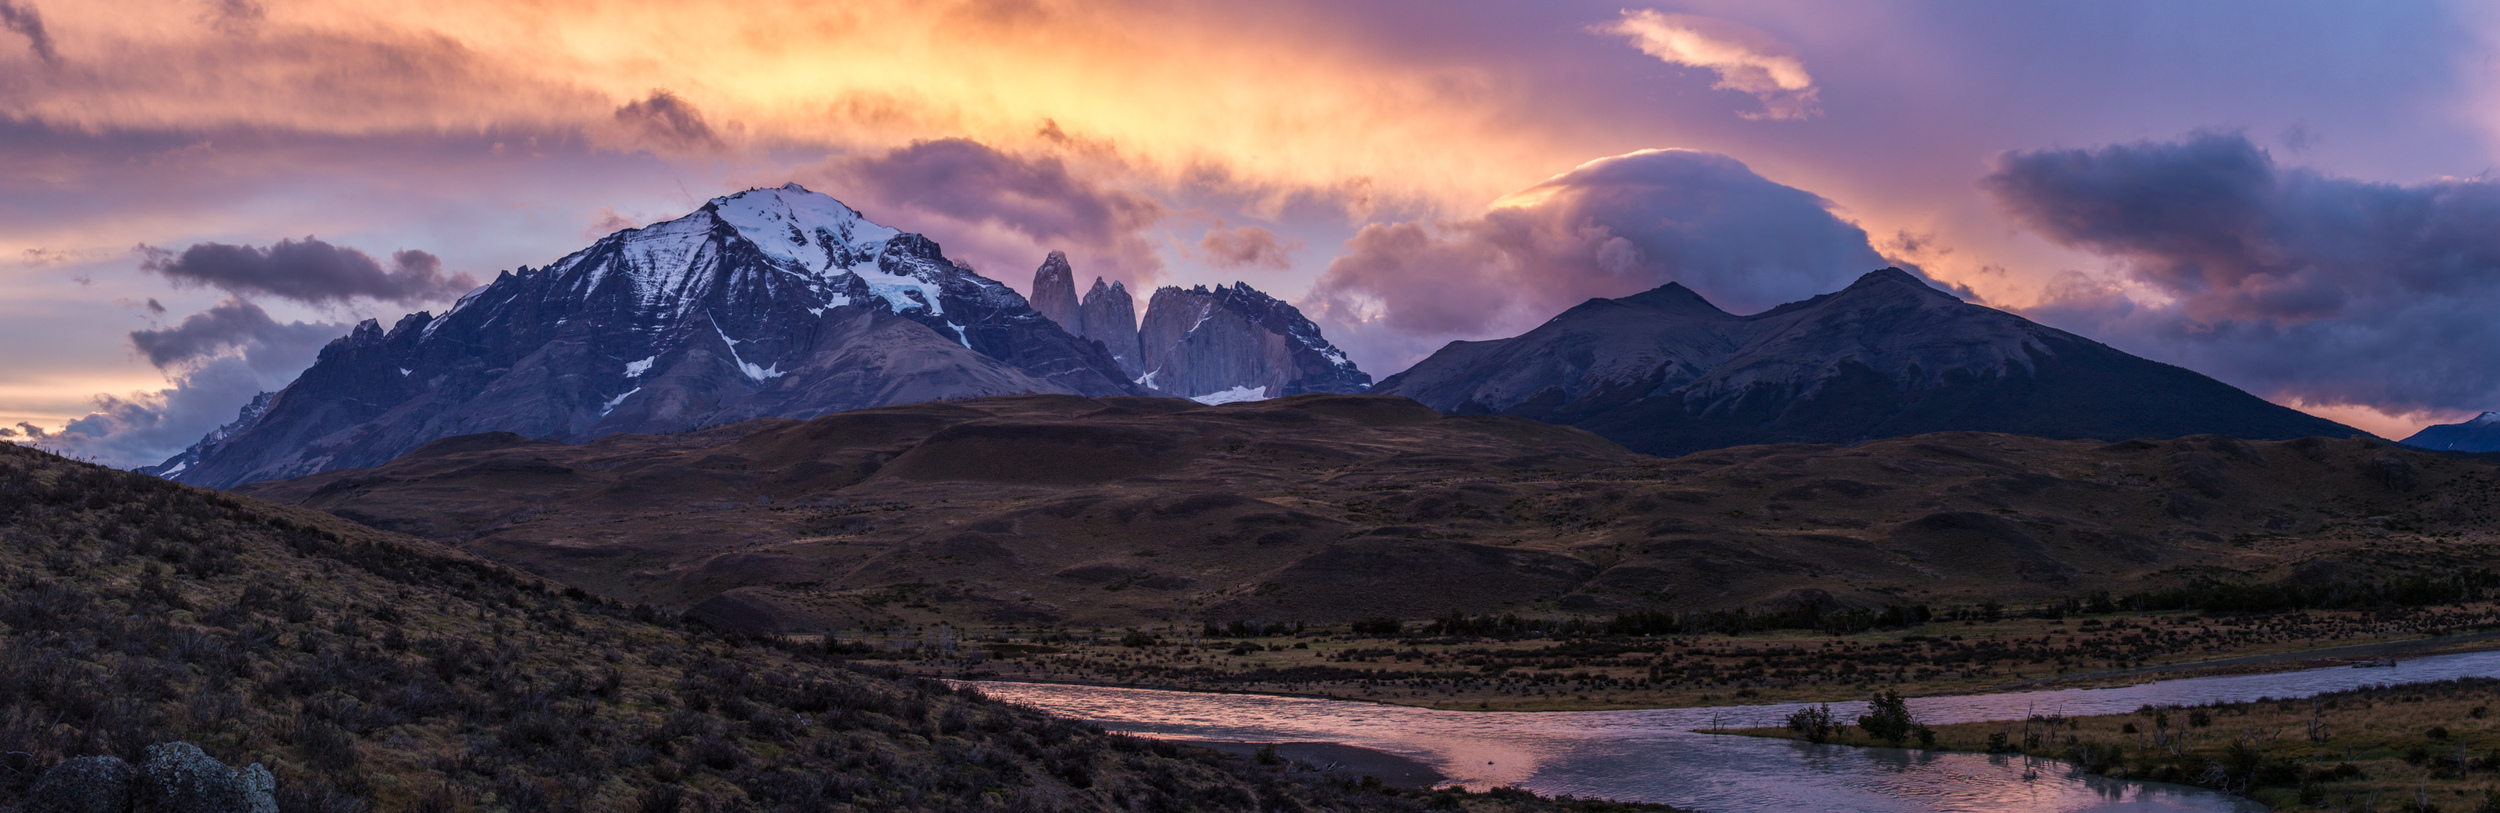 Parque Nacional Torres del Paine / March 27, 2014   Las Torres: it's pretty good-looking.  The Torres del Paine National Park is widely considered to be one of the most spectacular natural areas in South America.  It is located on the south western end of Chilean Patagonia and is the primary destination for the large numbers of tourists that visit the gateway town of Puerto Natales.  It is quite a photogenic region.